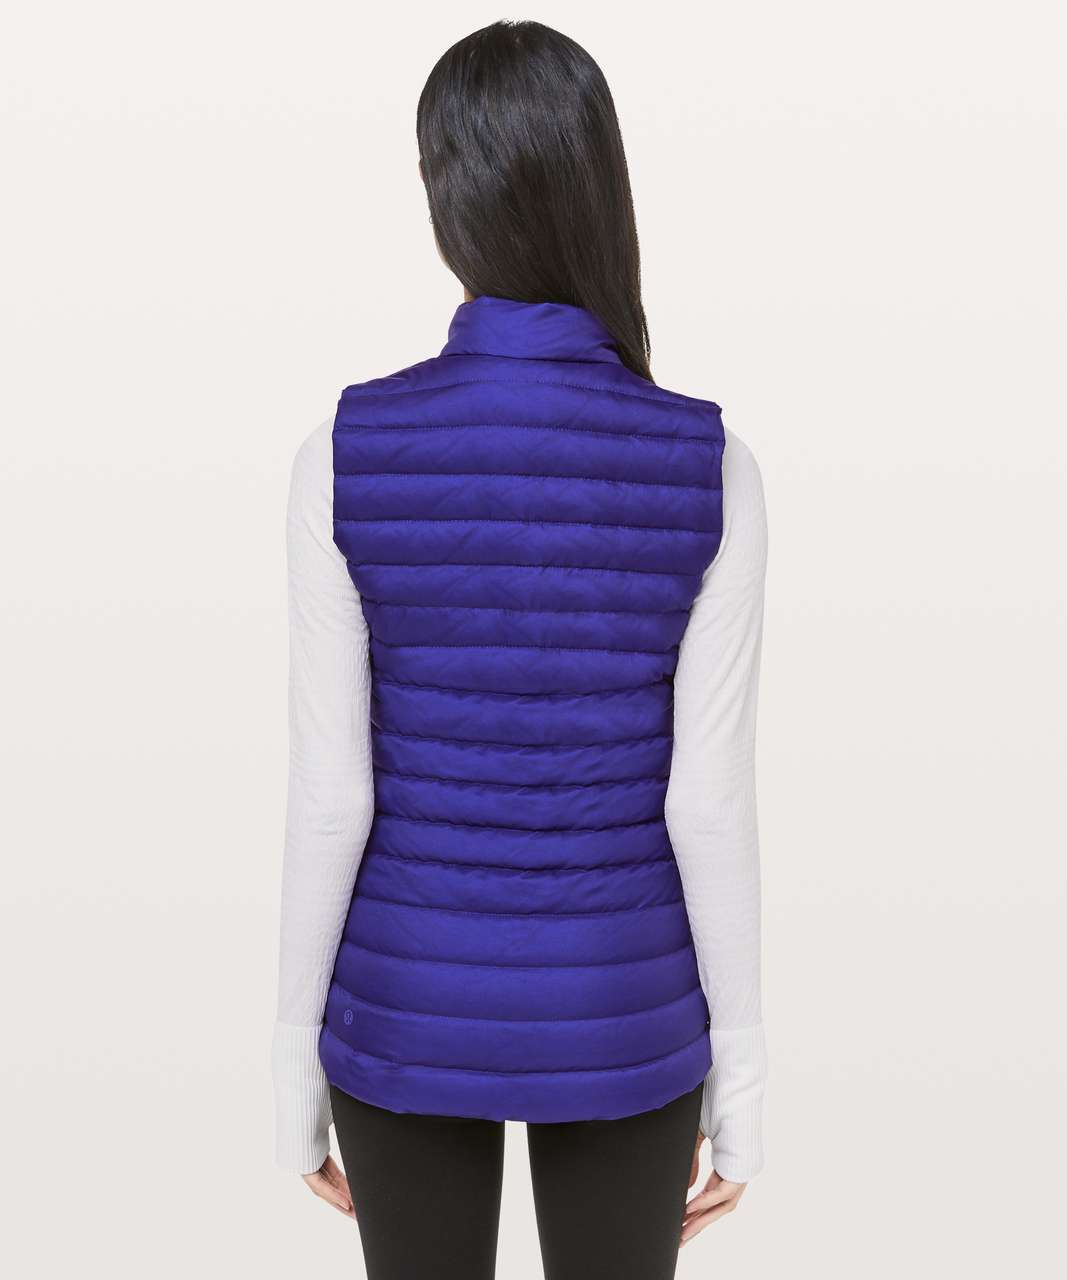 Lululemon Pack It Down Again Vest - Lazurite